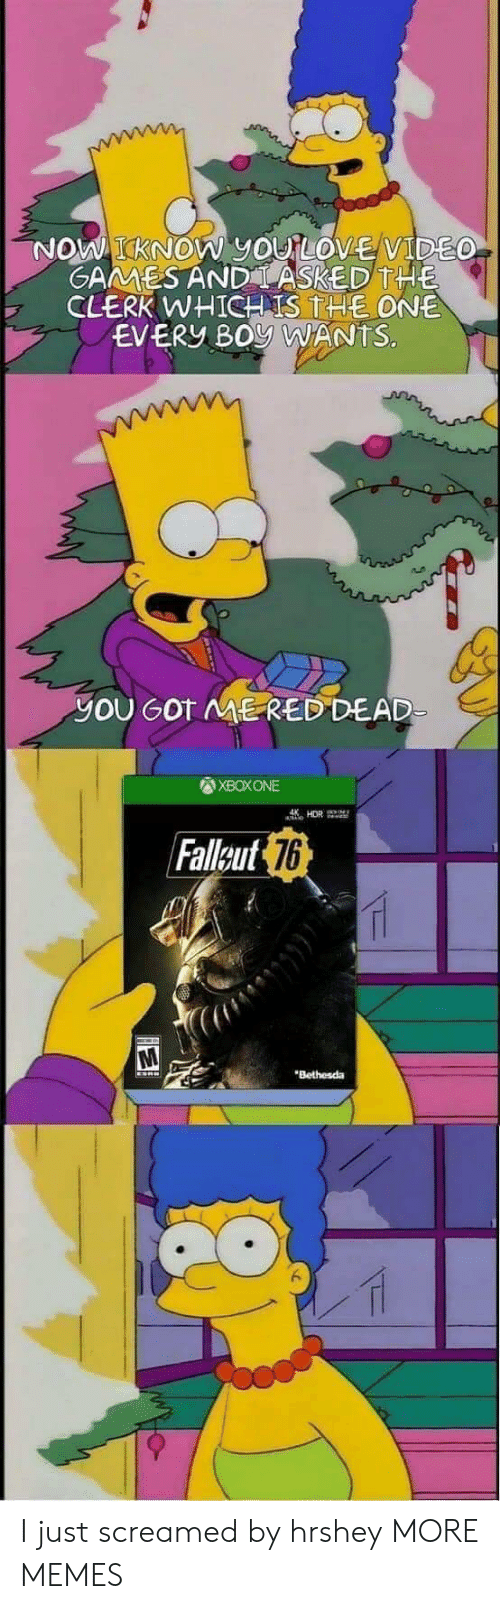 Dank, Love, and Memes: KNOW yOU LOVE VIDE  GAMMESAND LASKED THE  CLERK WHICH IS THE ONE  EVERY BOy WANTS.  yOU GOT ME RED DEAD  XBOXONE  Falleut  76  Bethesda I just screamed by hrshey MORE MEMES